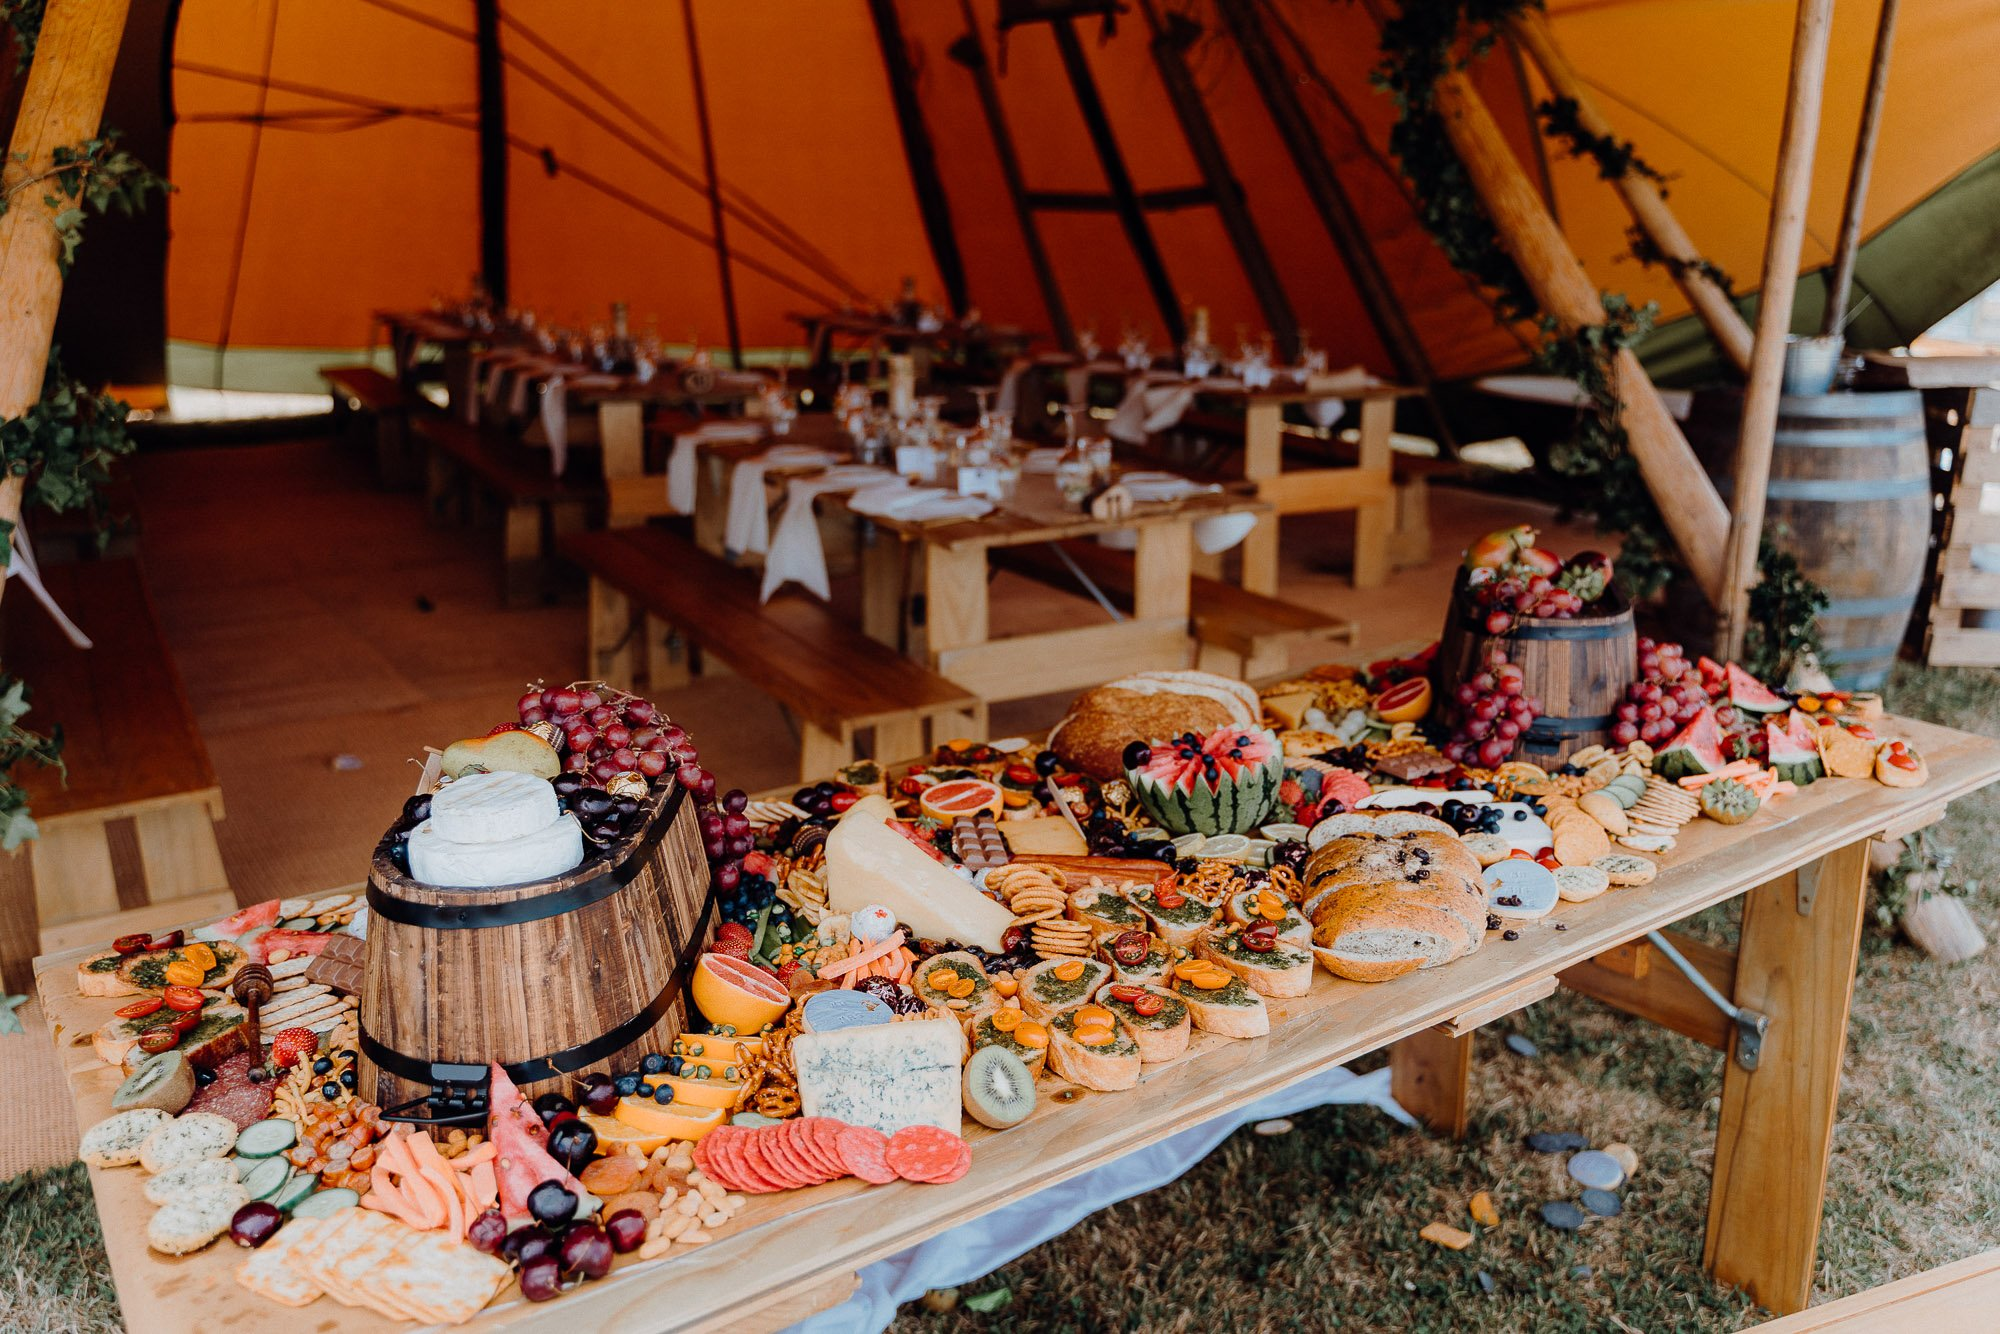 Wedding Photography Of Grazing Table Ideas 024. A country and rural themed grazing table.